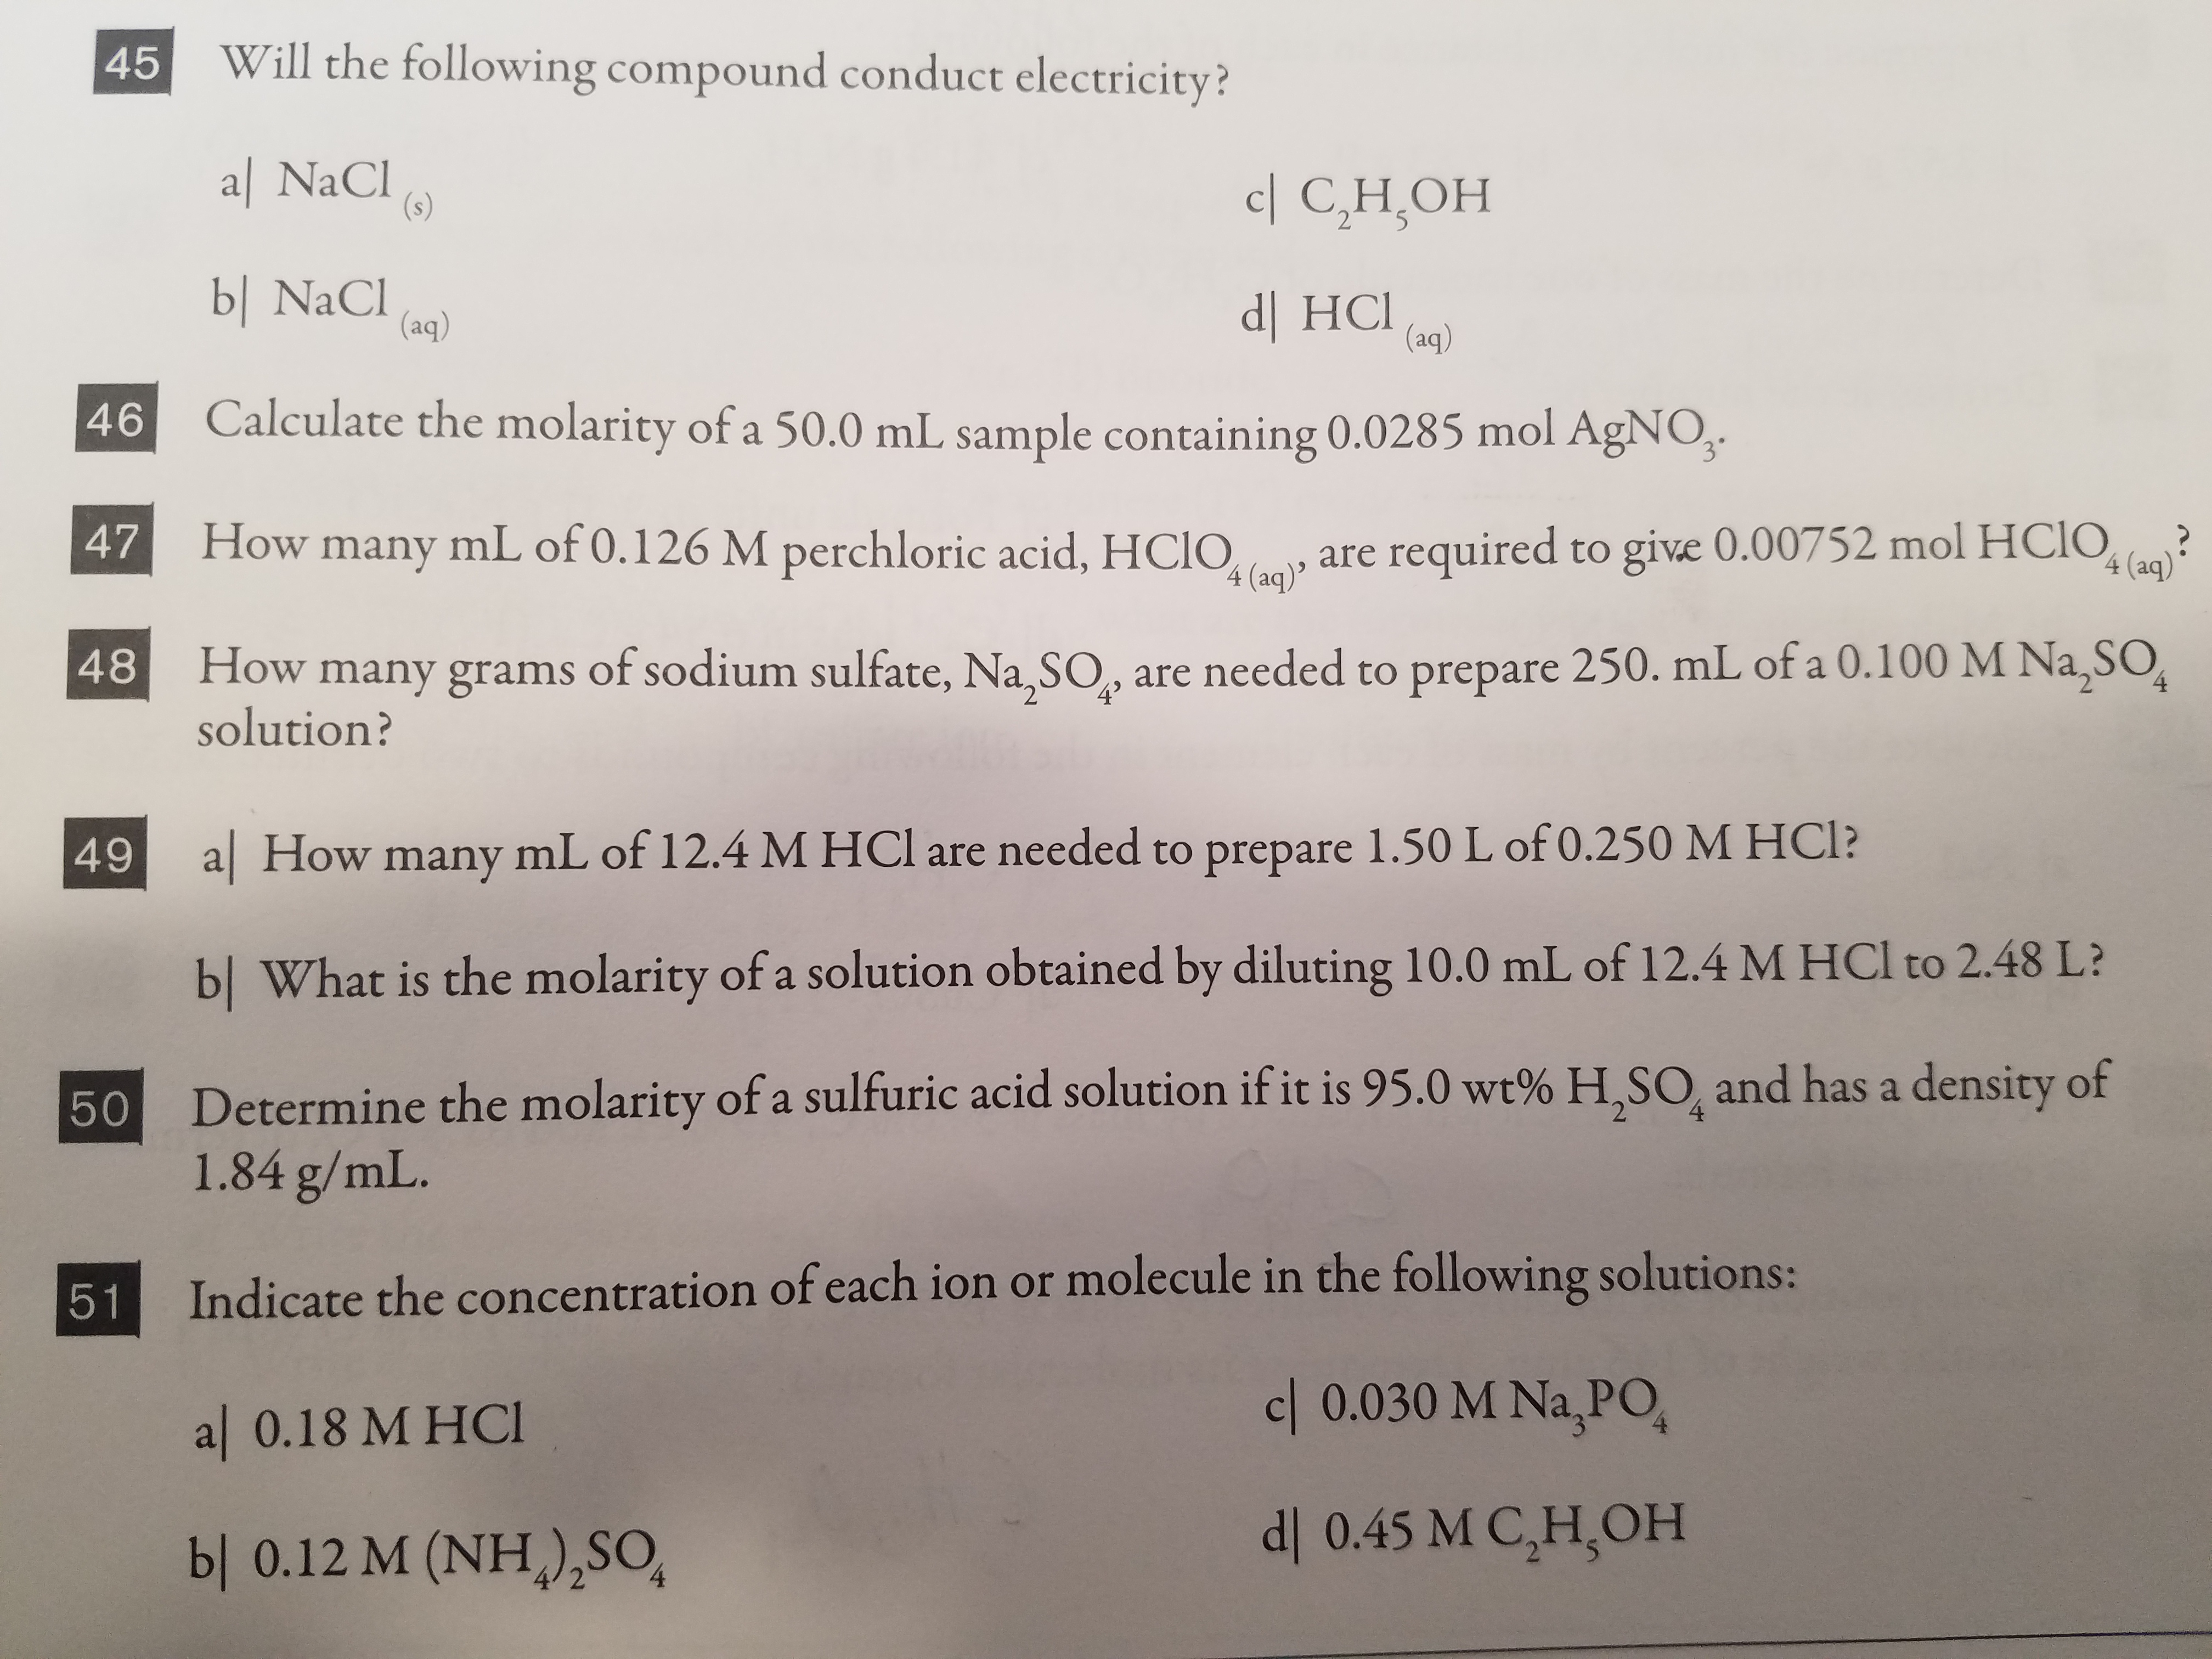 45 Will the following compound conduct electricity? W'ill the following compound conduct electricity al NaCI bl NaCI Calculate the molarity of a 50.0 mL sample containing 0.0285 mol AgNO How many mL of 0.126 M perchloric acid, HCIOquired to give 0.00752 mol HCO c| C,H,OH dl HCl) 46C 48 How many grams of sodium sulfate, Na,SO, are needed to prepare 250. mL of a 0.100 M Na,SO 49 a| How many mL of 12.4 M HCl are needed to prepare 1.50 L of 0.250 M HCI 47 4 (aq) solution? bl What is the molarity of a solution obtained by diluting 10.0 mL of 12.4 M HCl to 2.48 L? Determine the mol molarity of a sulfuric acid solution if it is 95.0 wt% H,SO and has a density of 1.84 g/mL. Indicate the concentration of each ion or molecule in the following solution al 0.18 M HCI bl 0.12 M (NH) SO 51 c| 0.030 M Na,PO dl 0.45 M C,H,OH